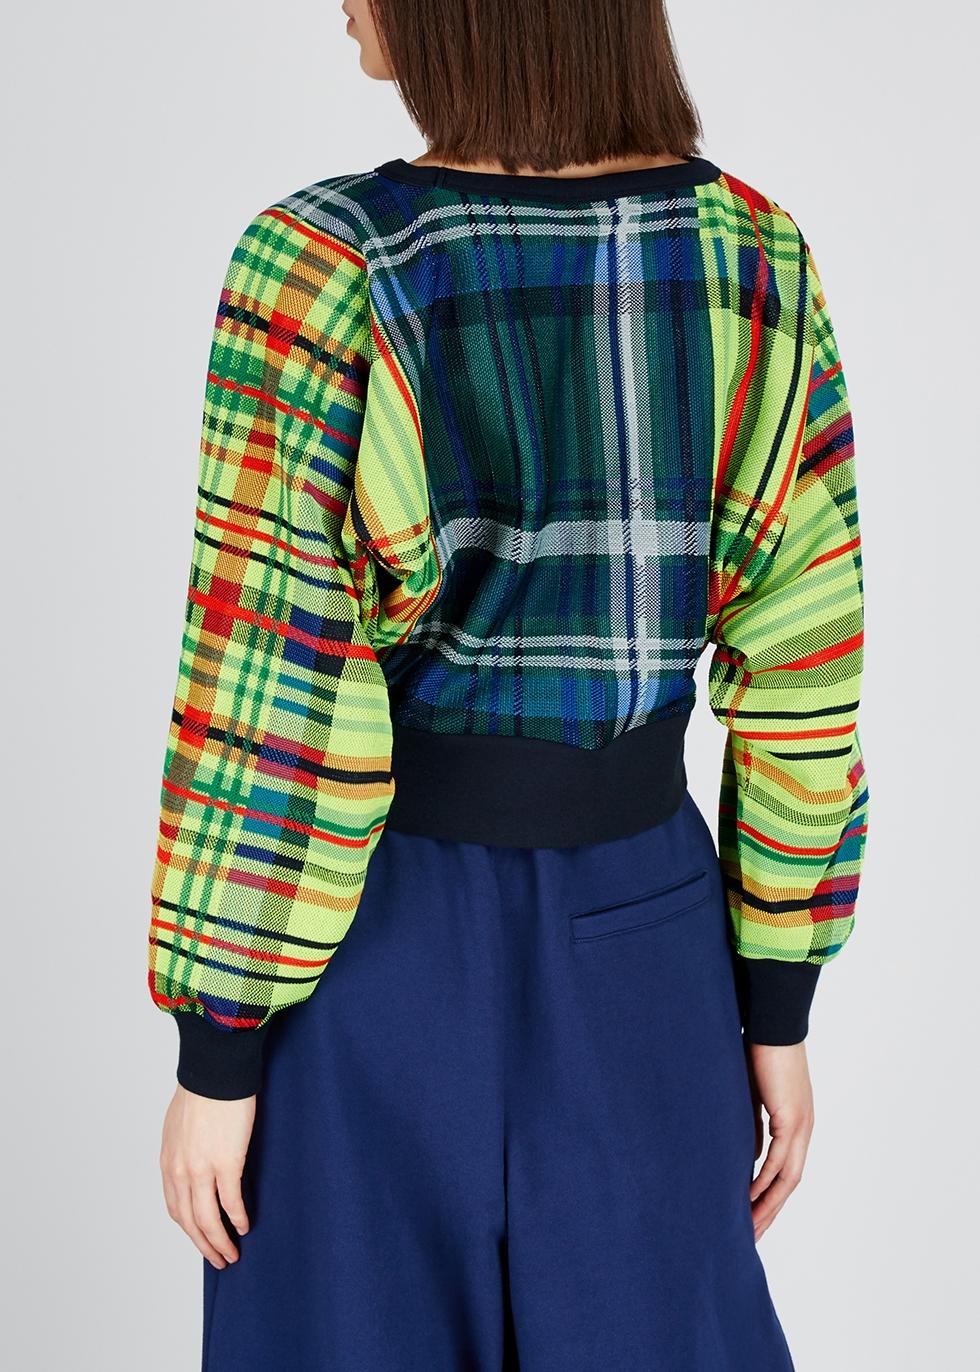 Heletta plaid jumper - Dries Van Noten